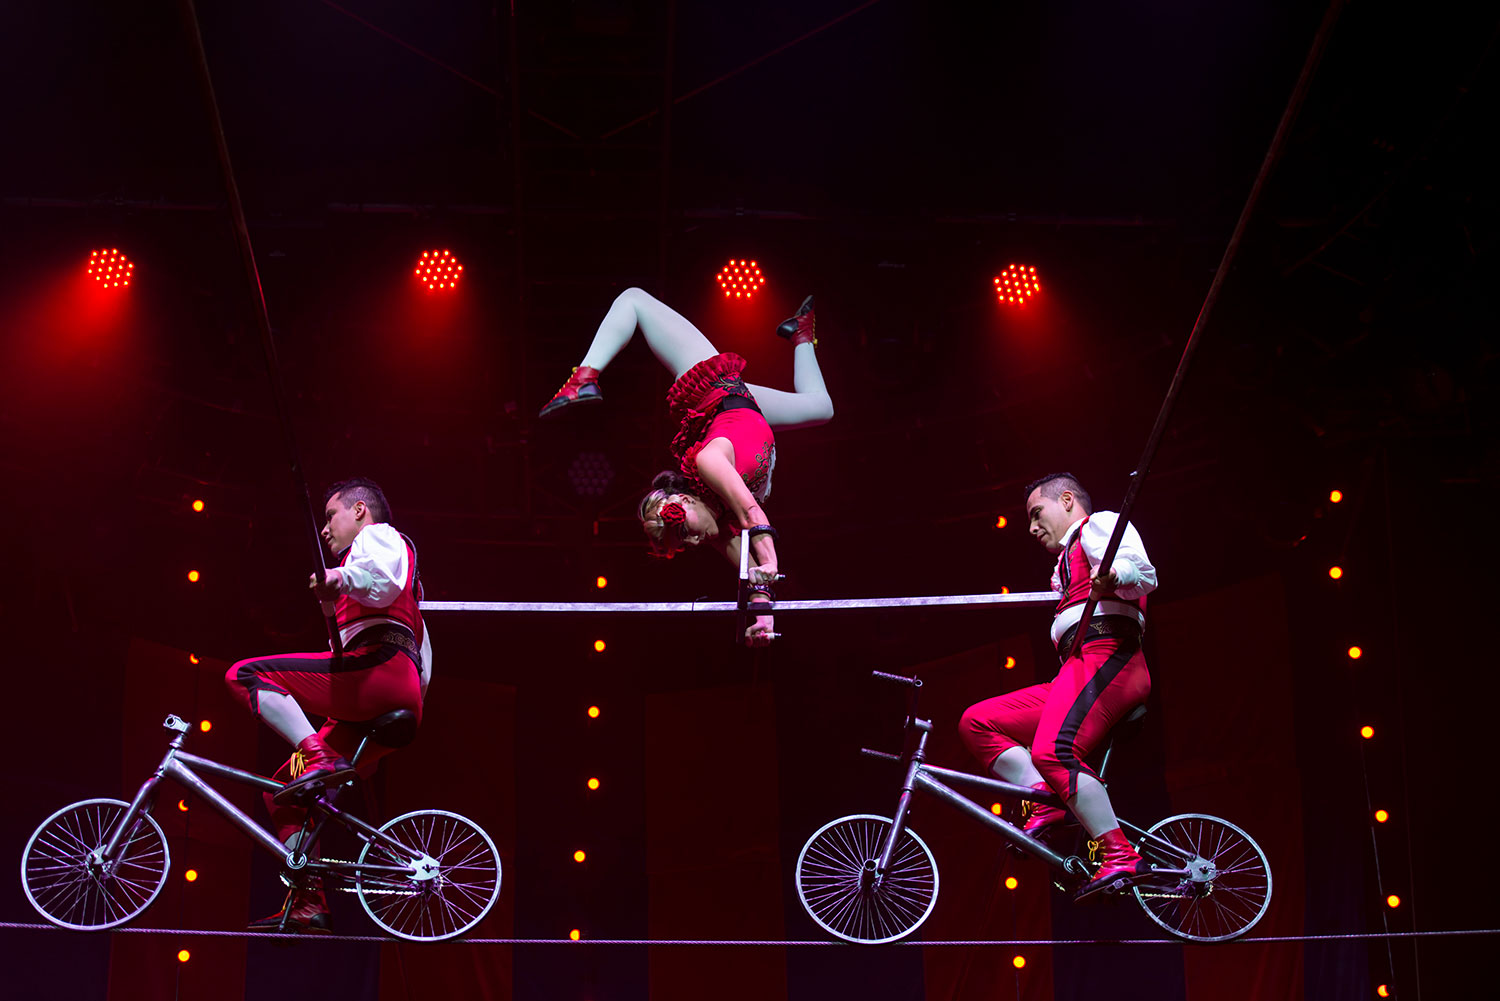 Circus 1903 Transforms the Stage into a Turn-of-the-Century Circus in Asia